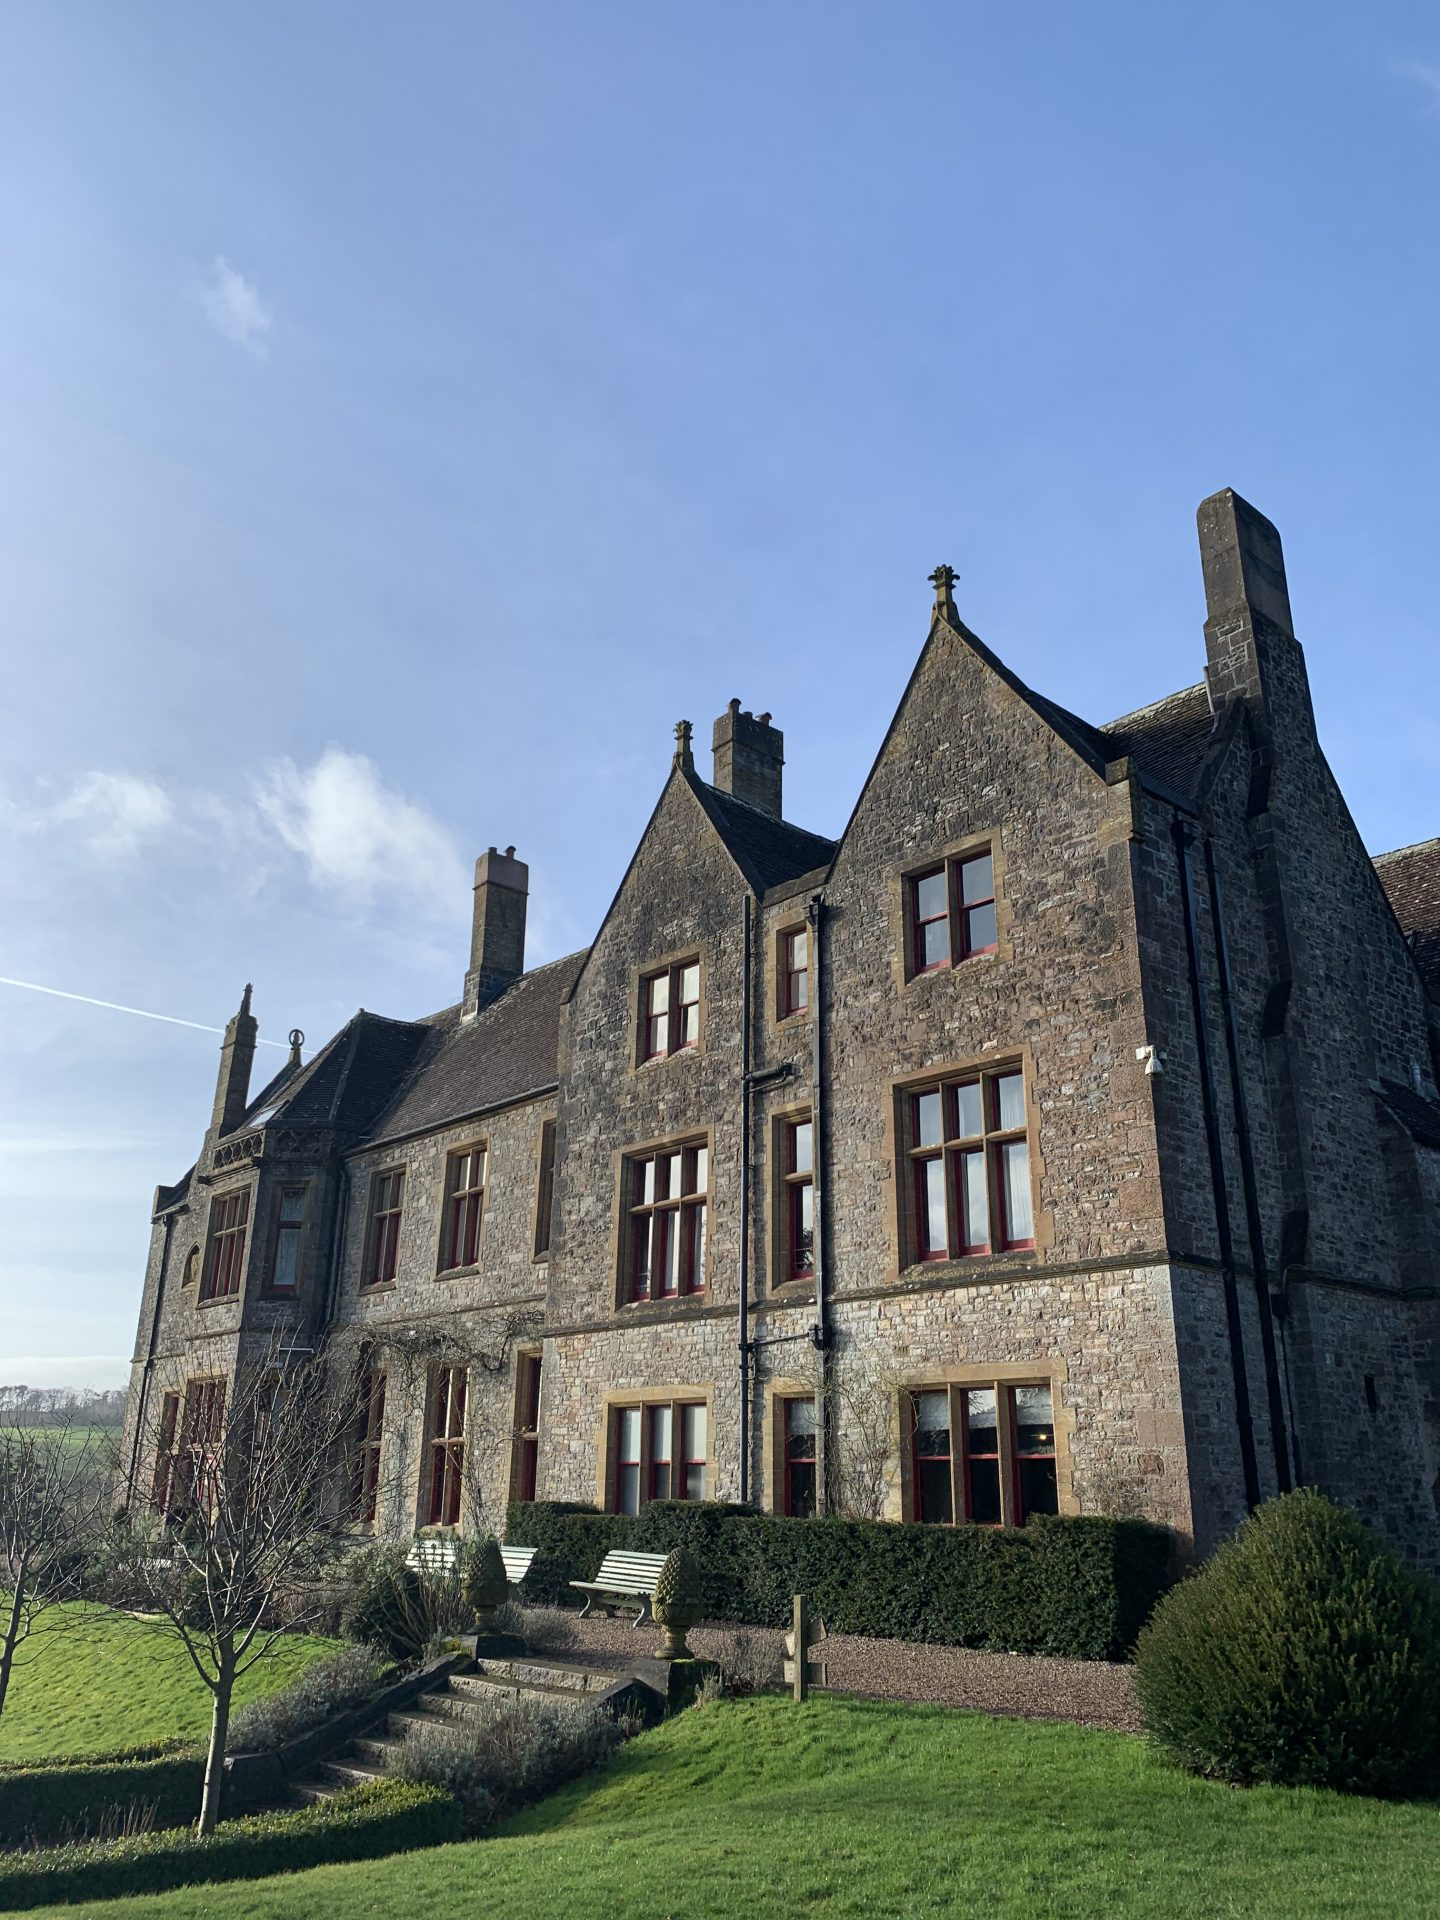 Rest & Restore Wellness Retreat at Huntsham Court, Devon